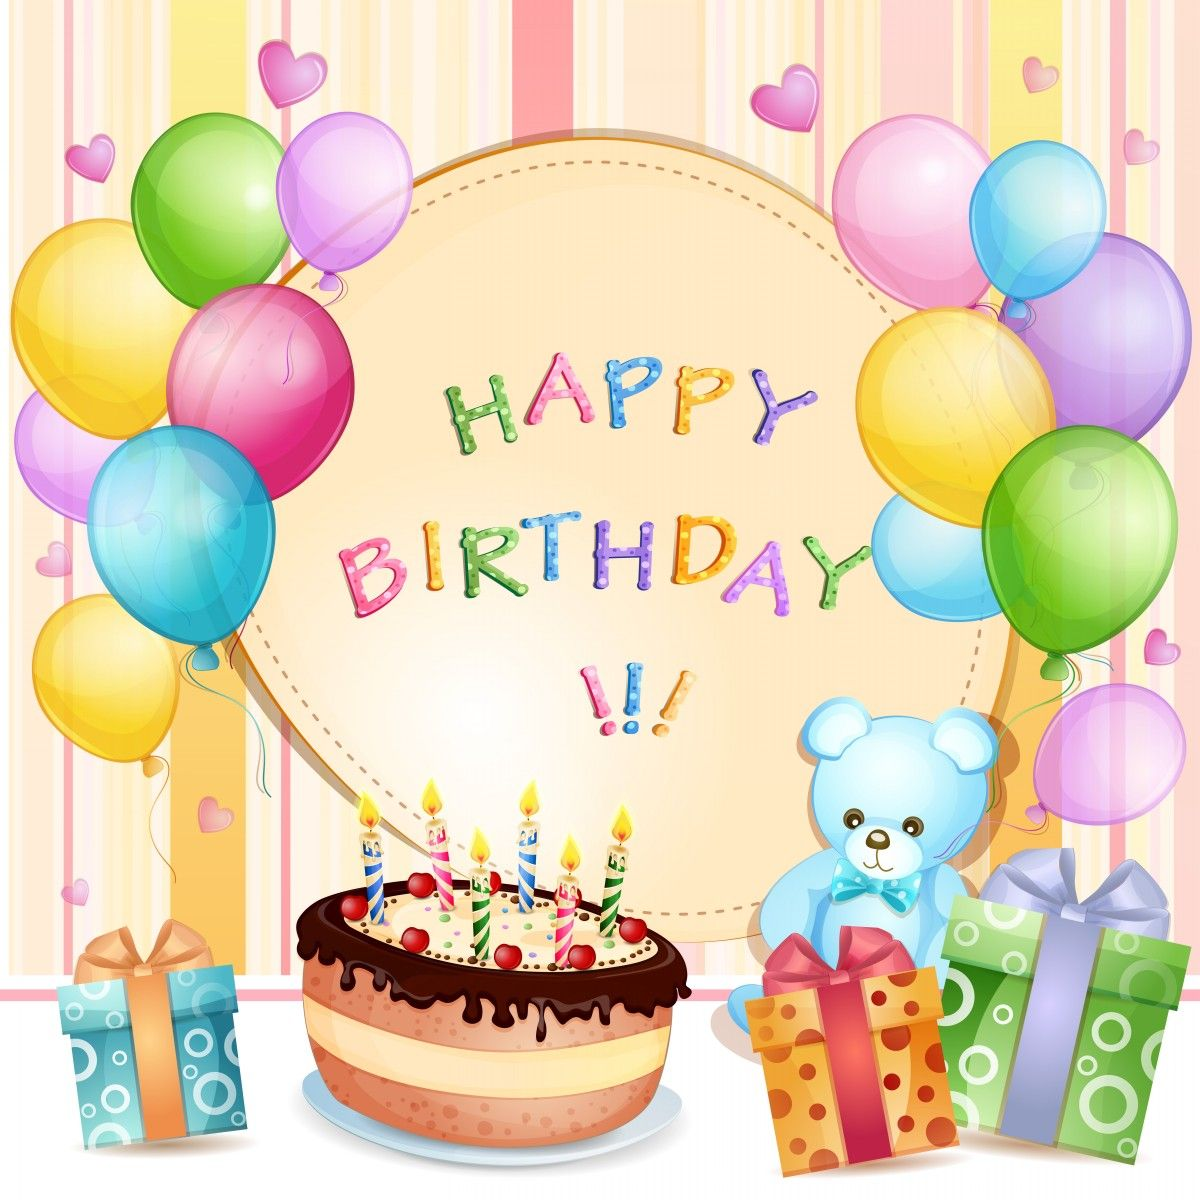 Happy Birthday Greetings For Children A Cards Pinterest Happy